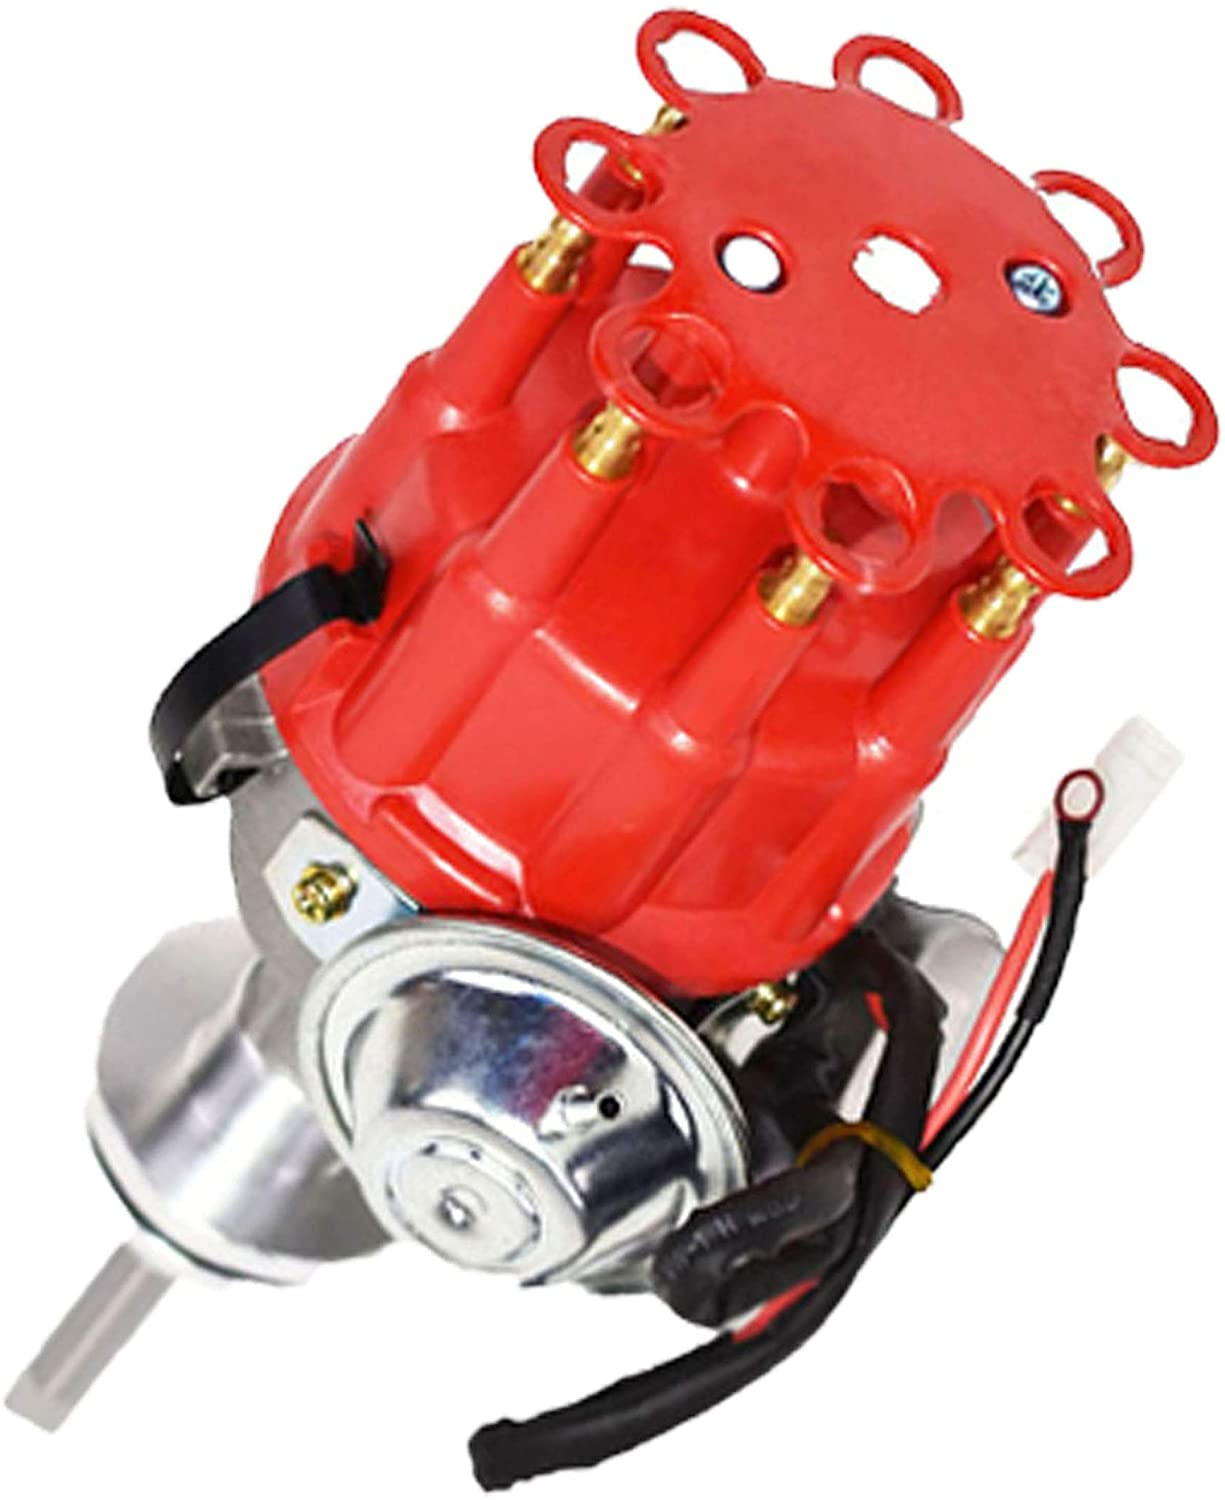 A-Team Performance Complete Ready to Run Distributor 8 Cylinders Compatible with Chrysler Dodge Mopar Big Block 413, 426, and 440 R2R Two-Wire Installation Red Cap